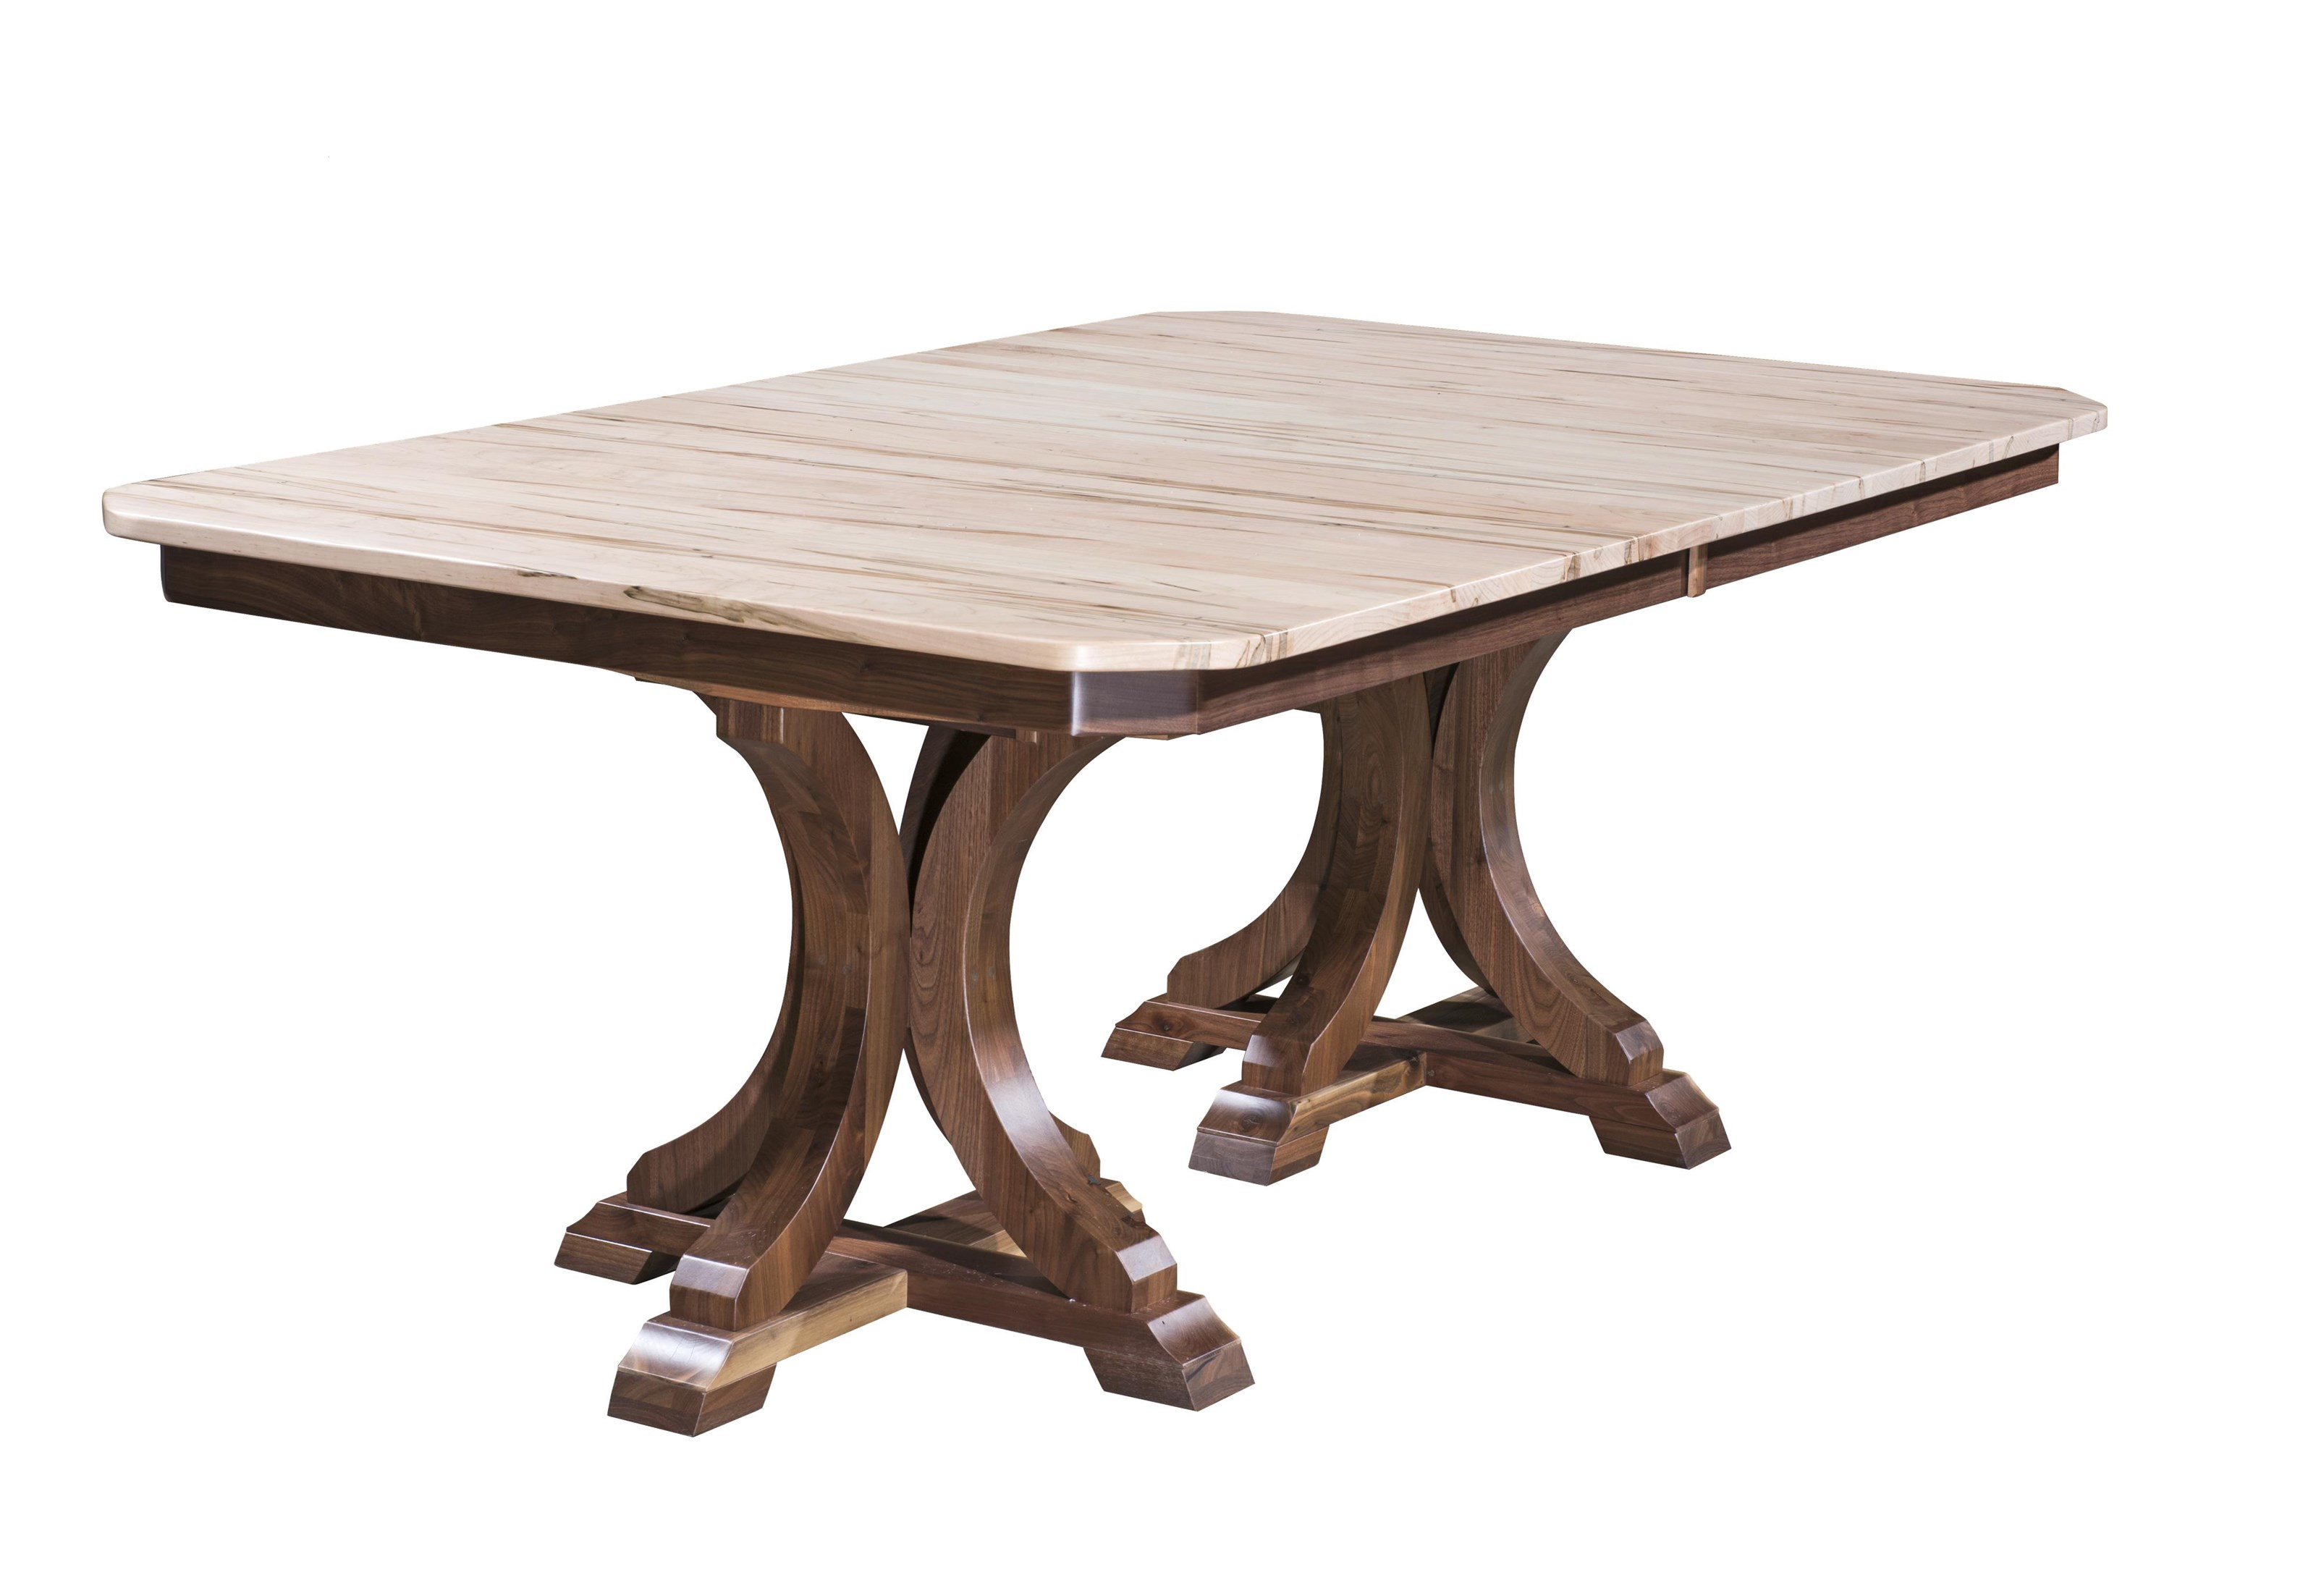 Kountry Knob Corsica Double Pedestal Table by Wayside Custom Furniture at Wayside Furniture